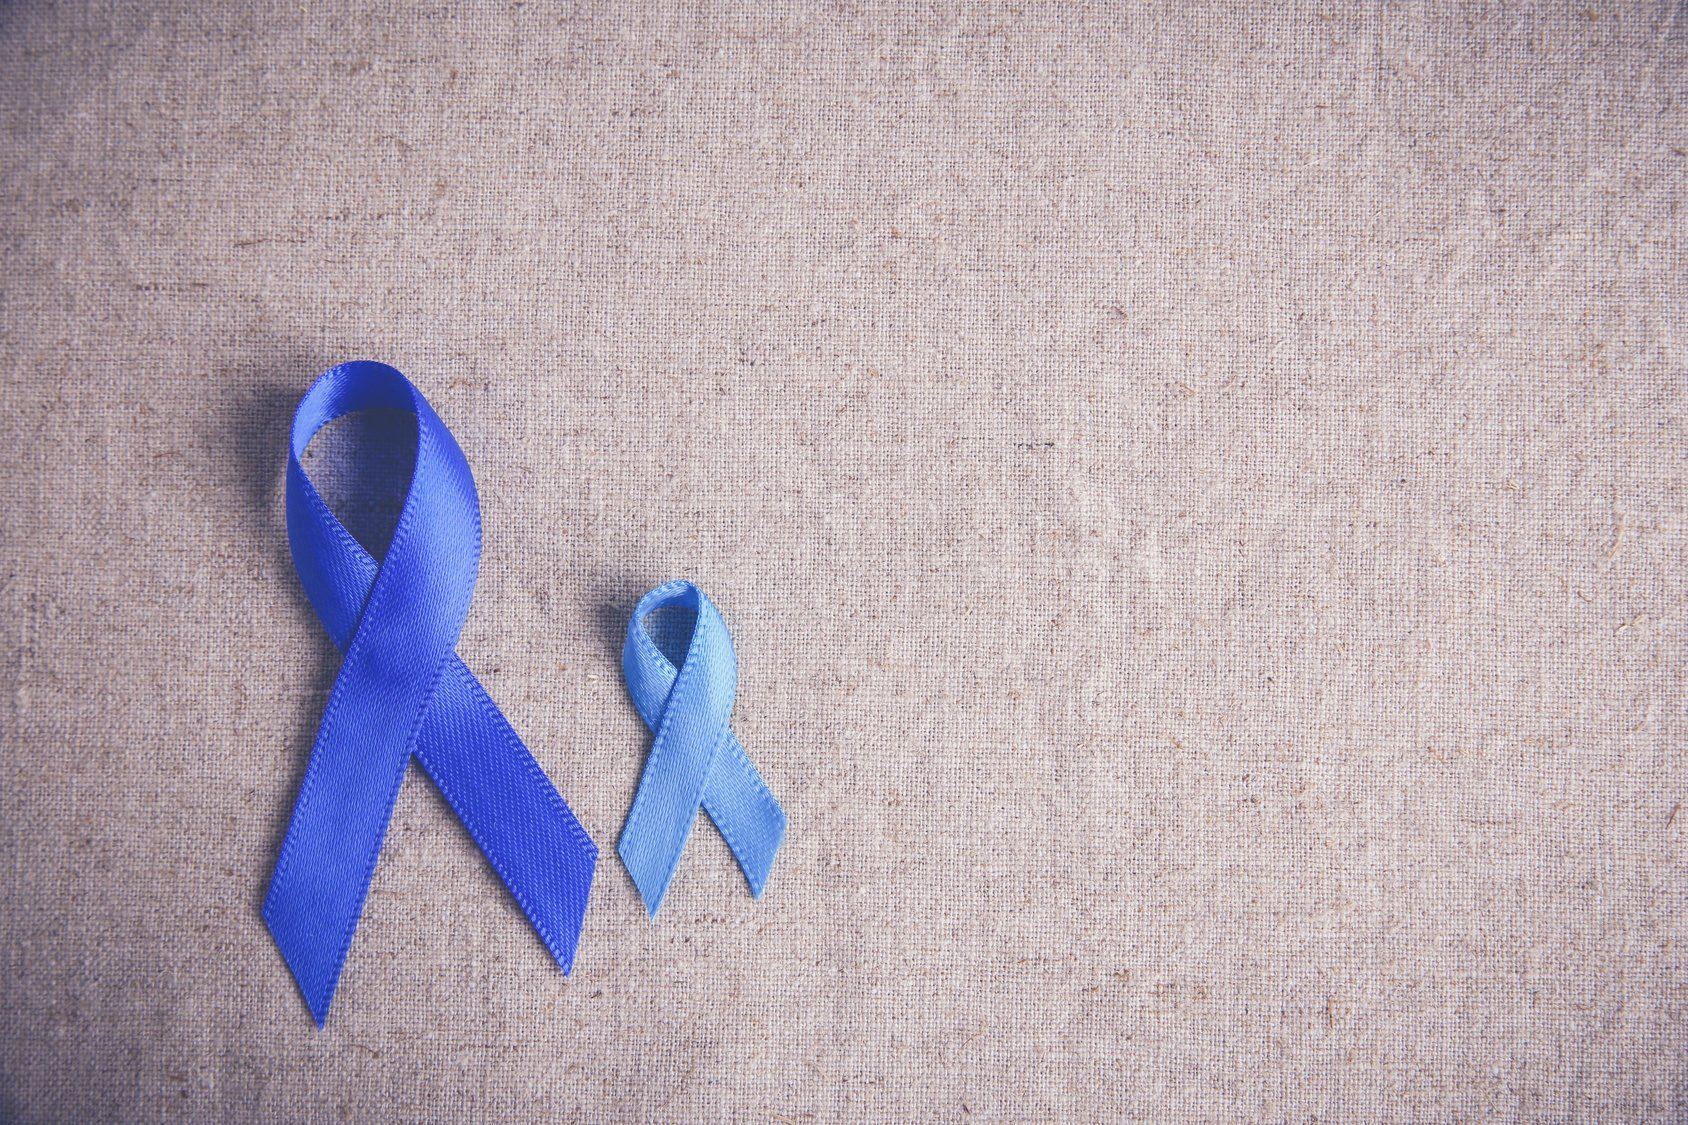 Blue Ribbons Toning Background Colon Cancer Colorectal Cancer Onco Zine